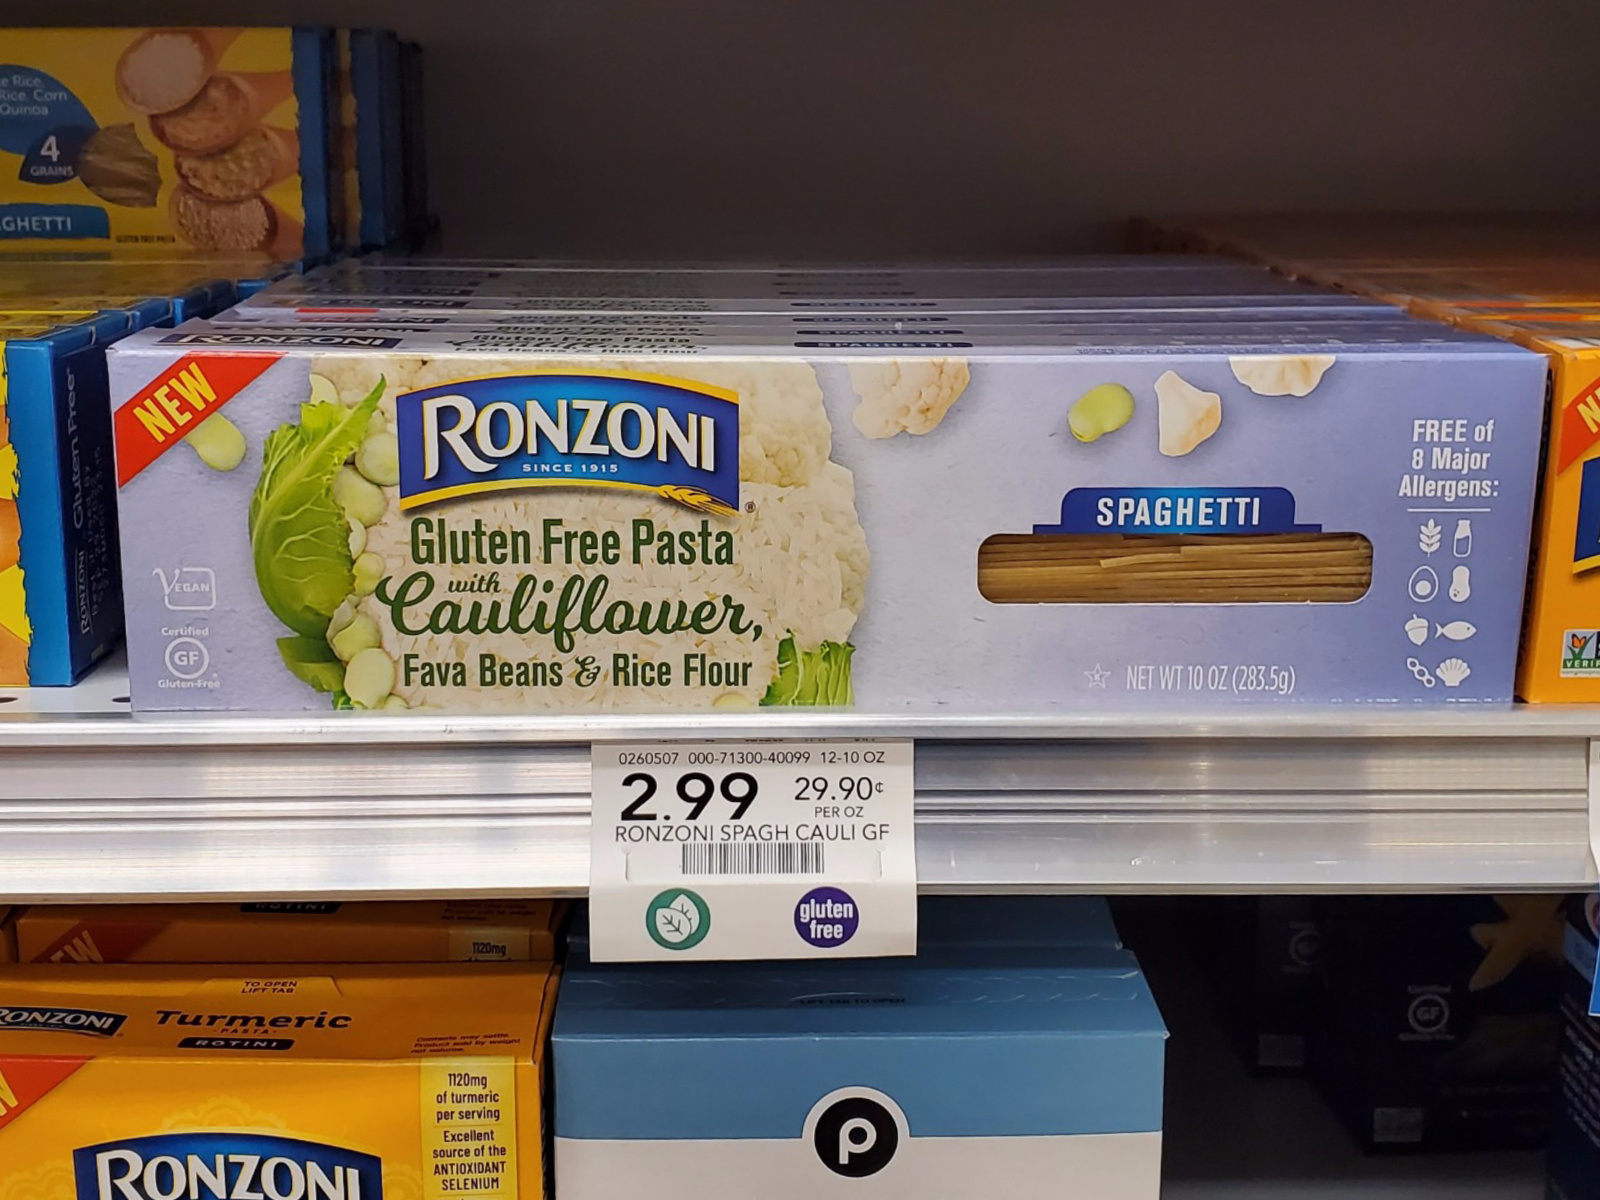 Save On Ronzoni At Publix & Try This Recipe For Ronzoni Cauliflower Penne with Spicy Sausage Ragu on I Heart Publix 1